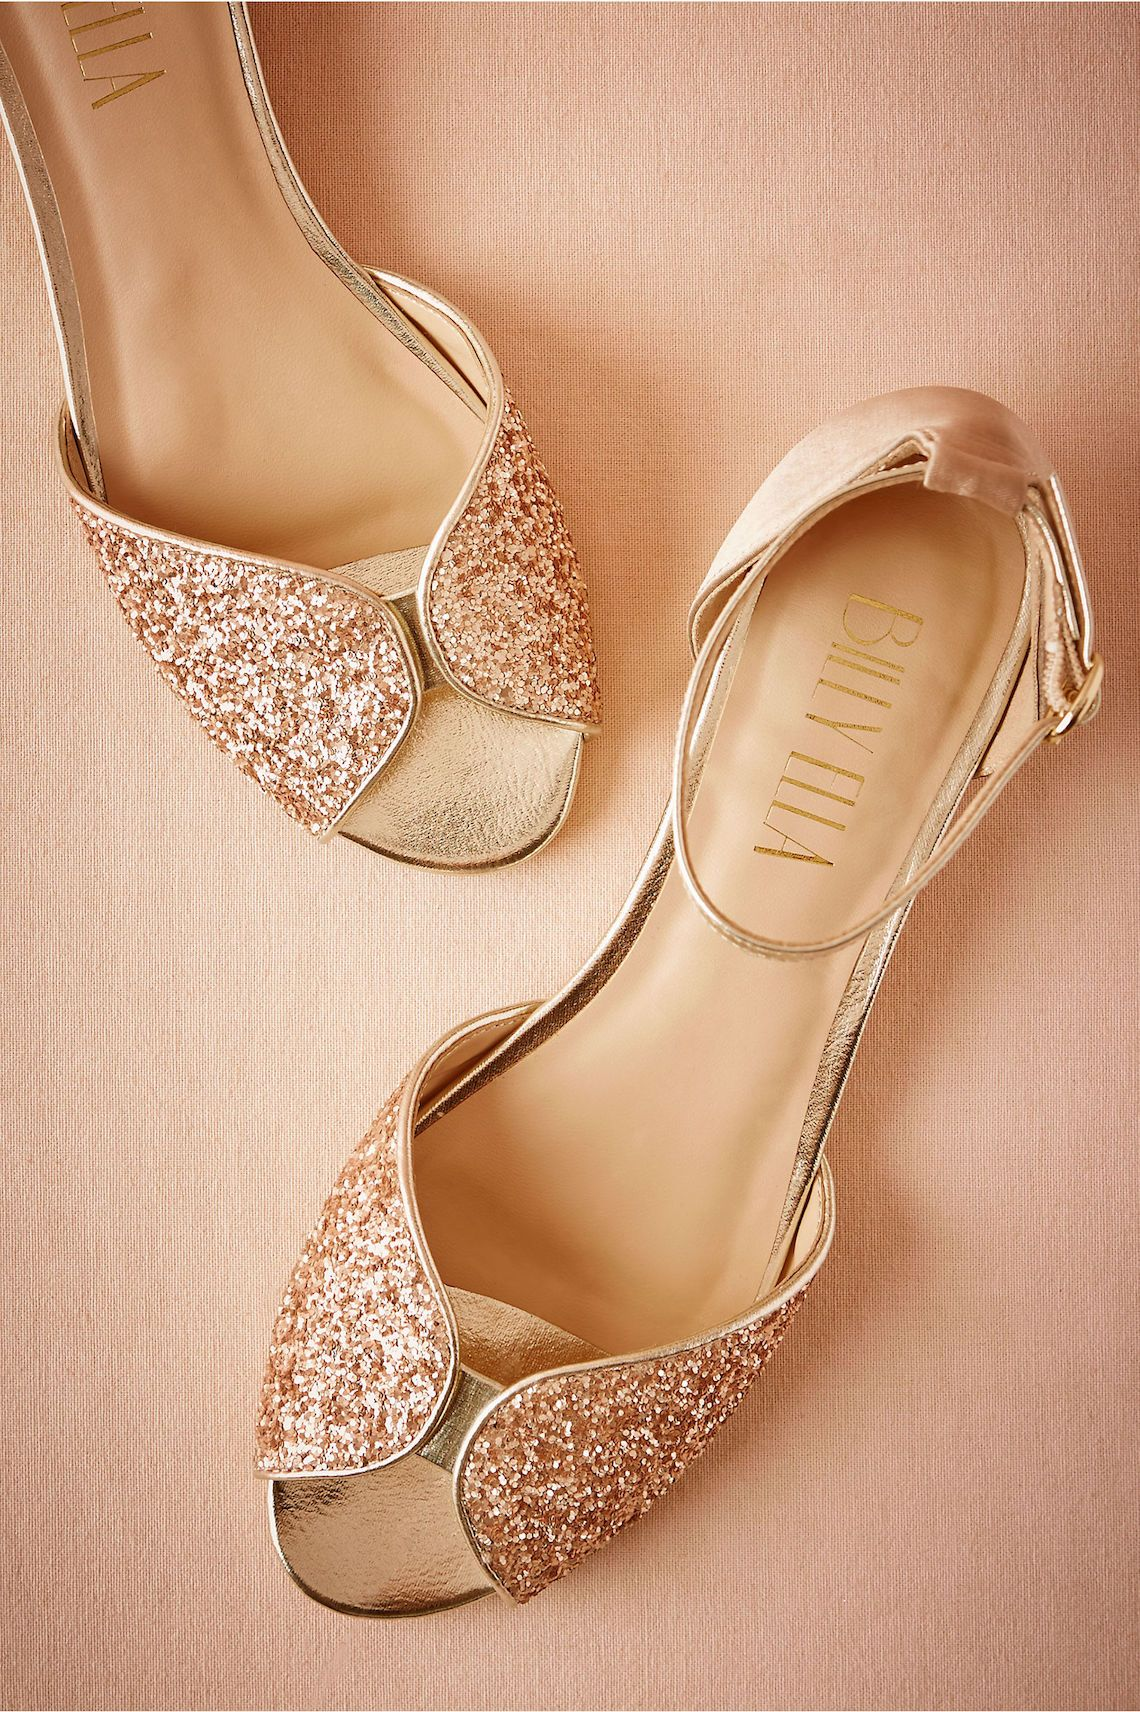 418289dd338 10 Flat Wedding Shoes (That Are Just As Chic As Heels)